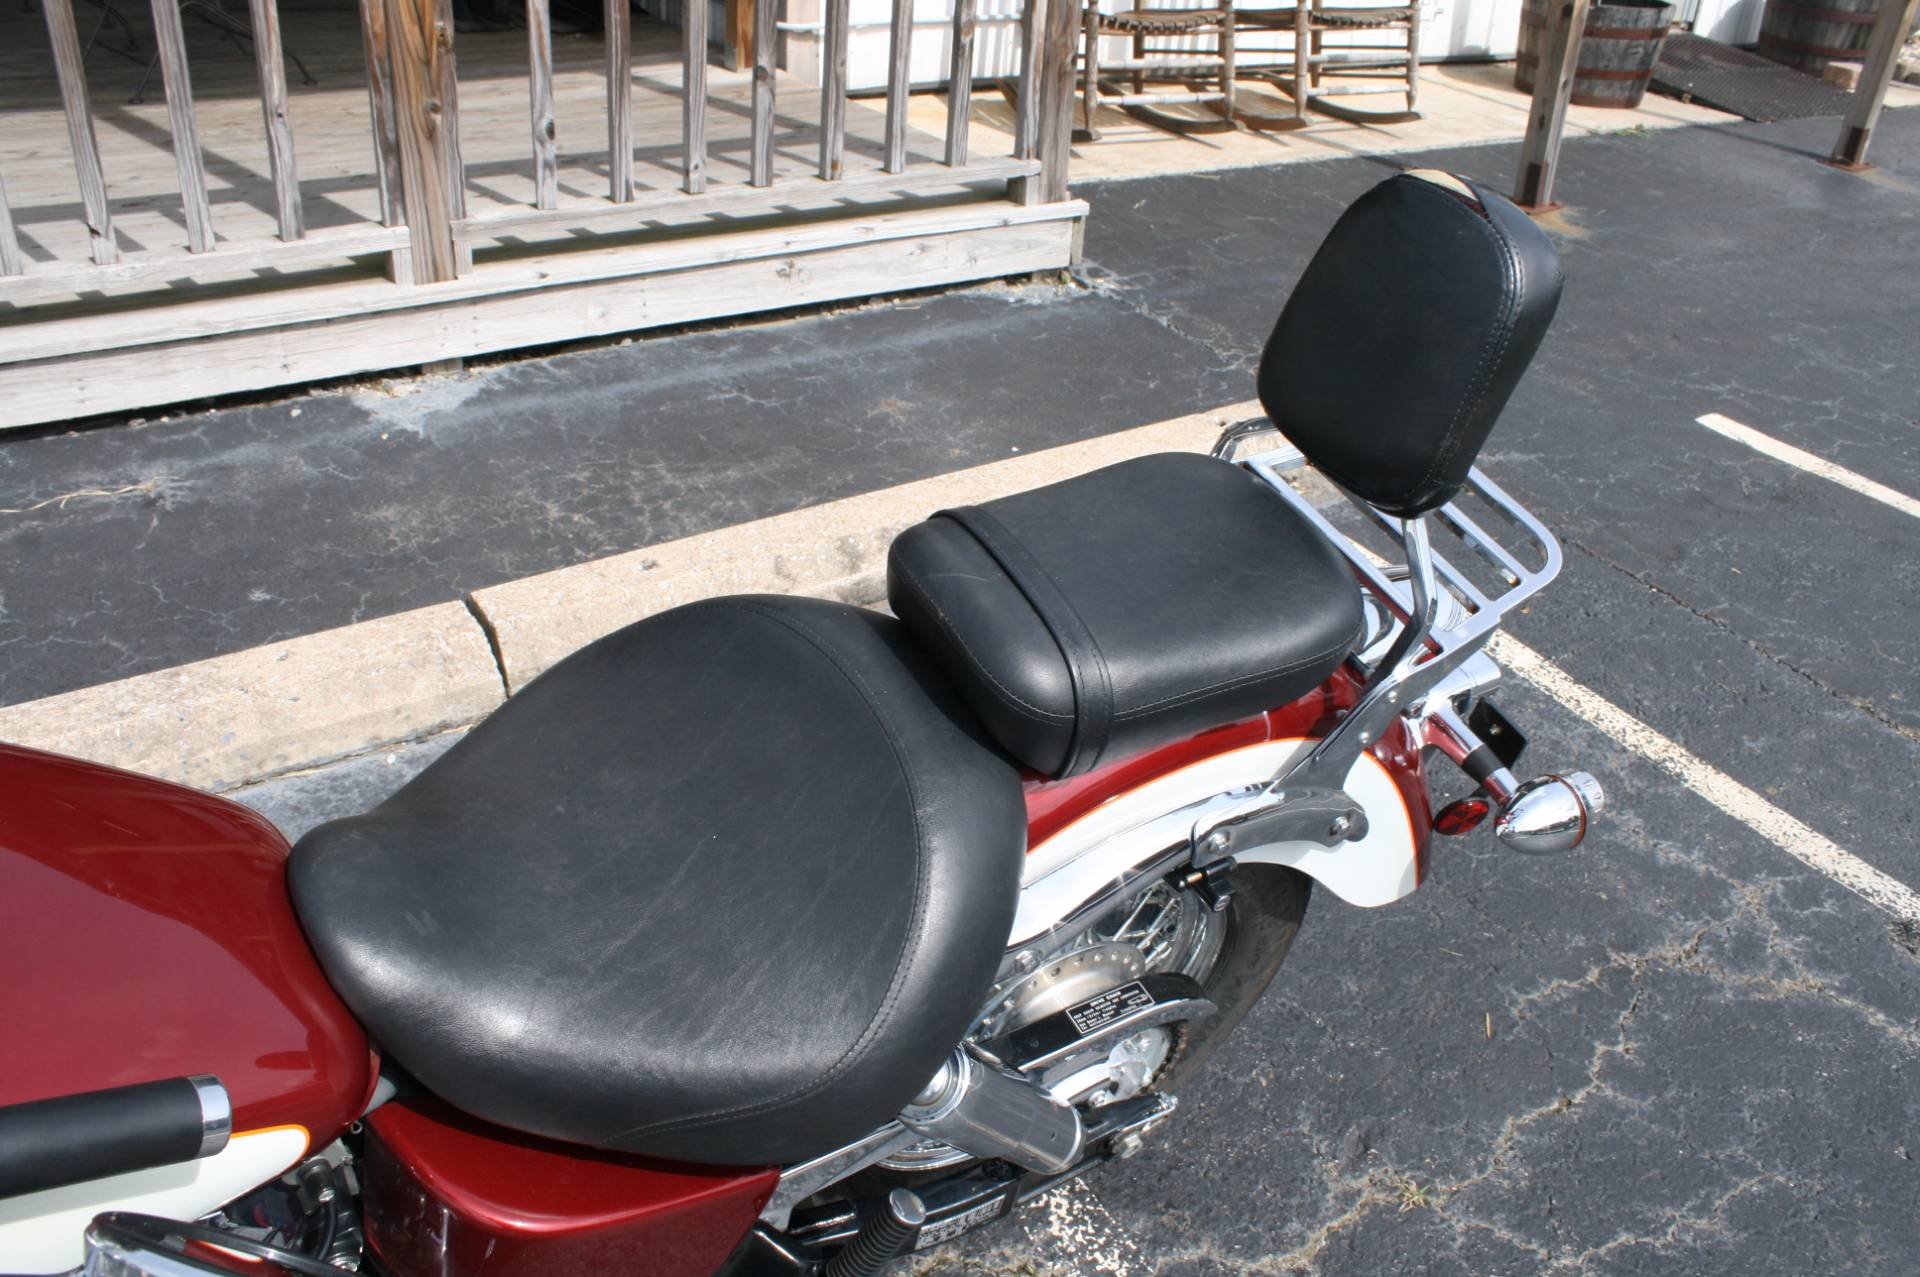 2001 Honda VT750 SHADOW ACE in Greenbrier, Arkansas